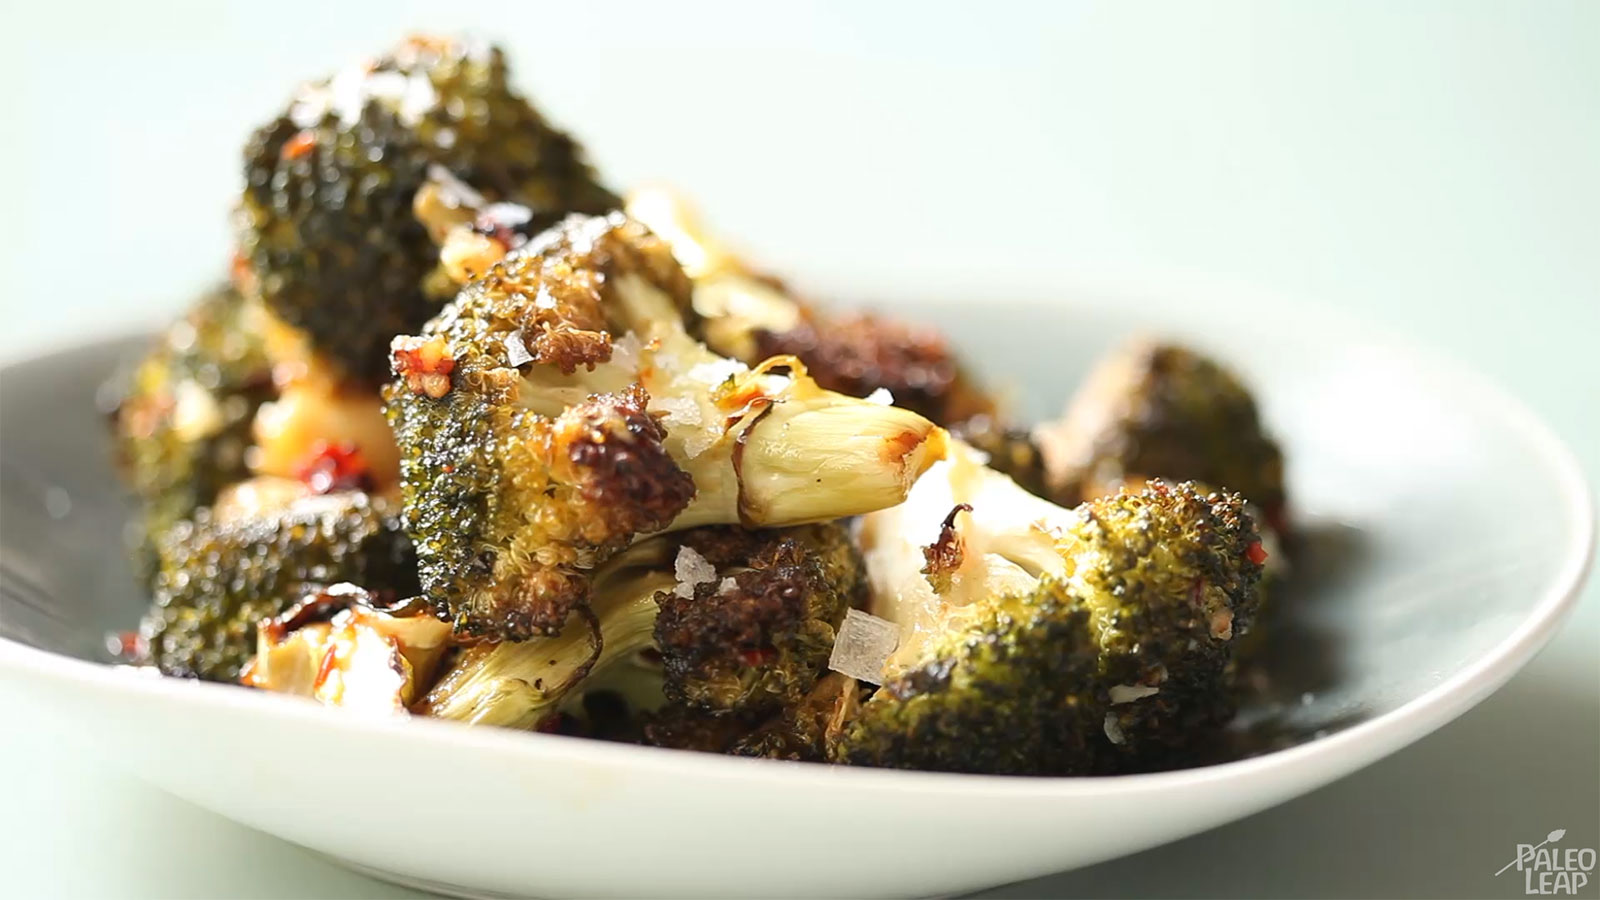 Chili and Garlic Roasted Broccoli